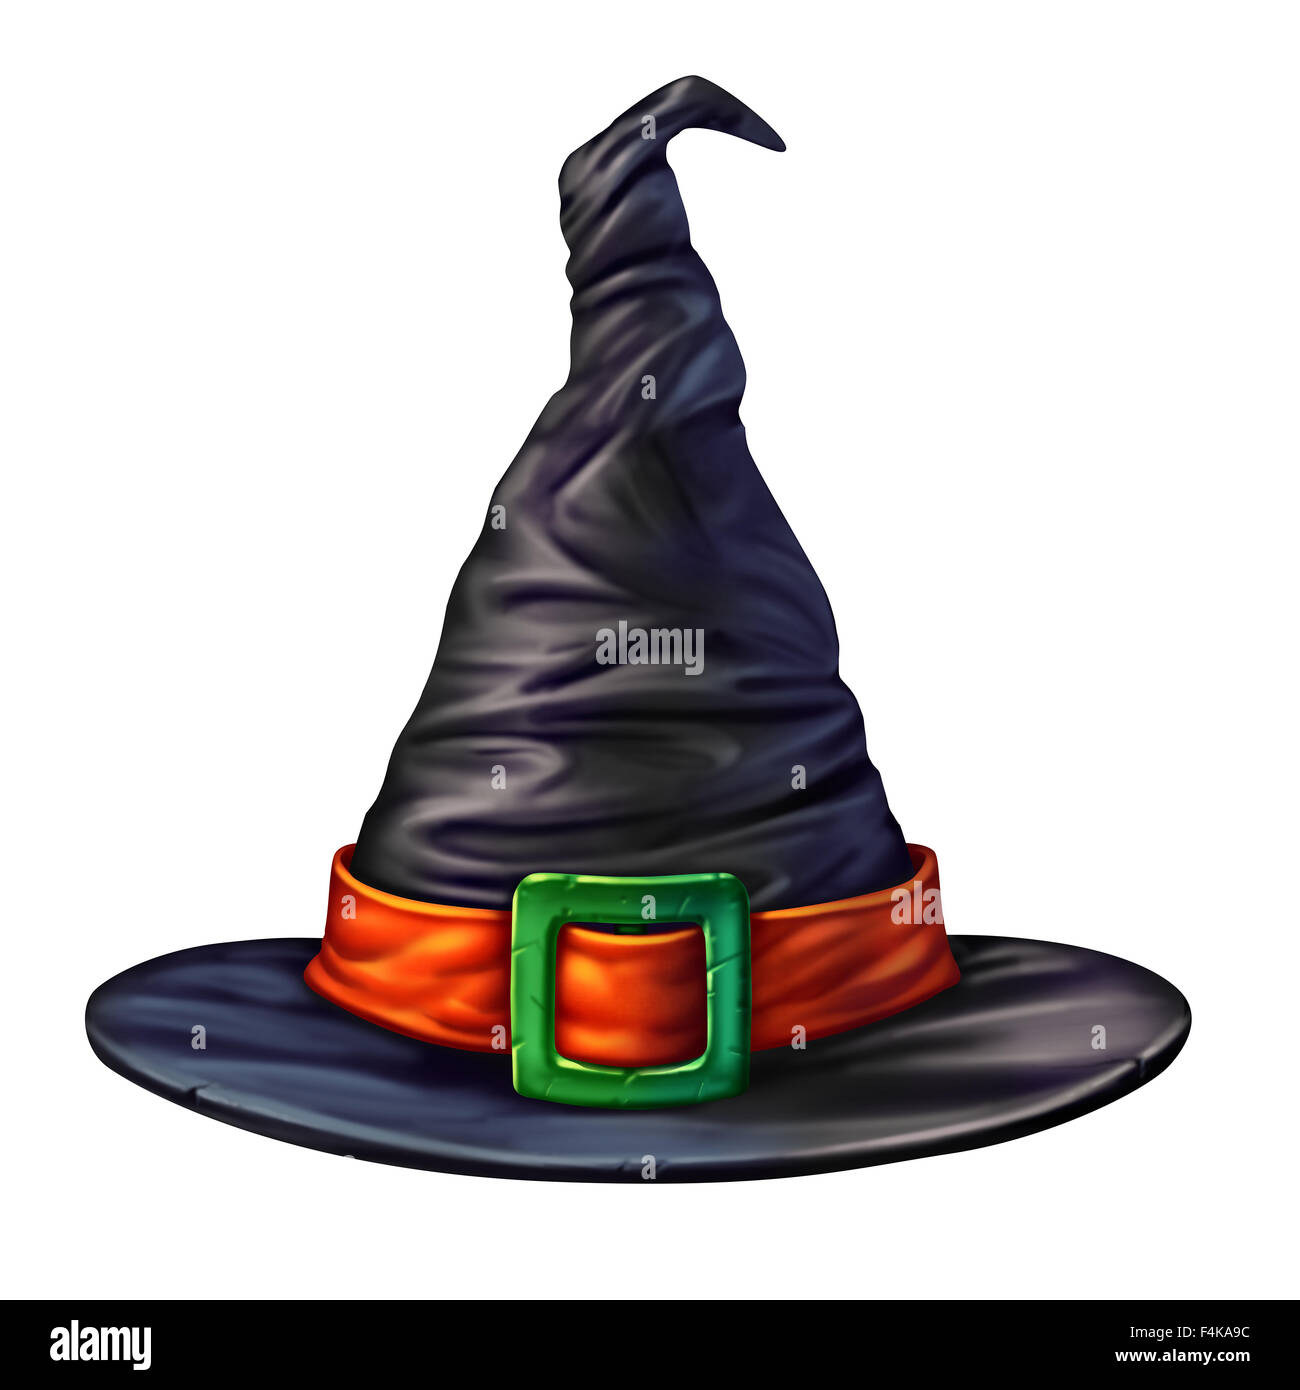 Witch hat isolated on a white background as a spooky mystical dimensional black head garment for a sorcerer or sorceress - Stock Image